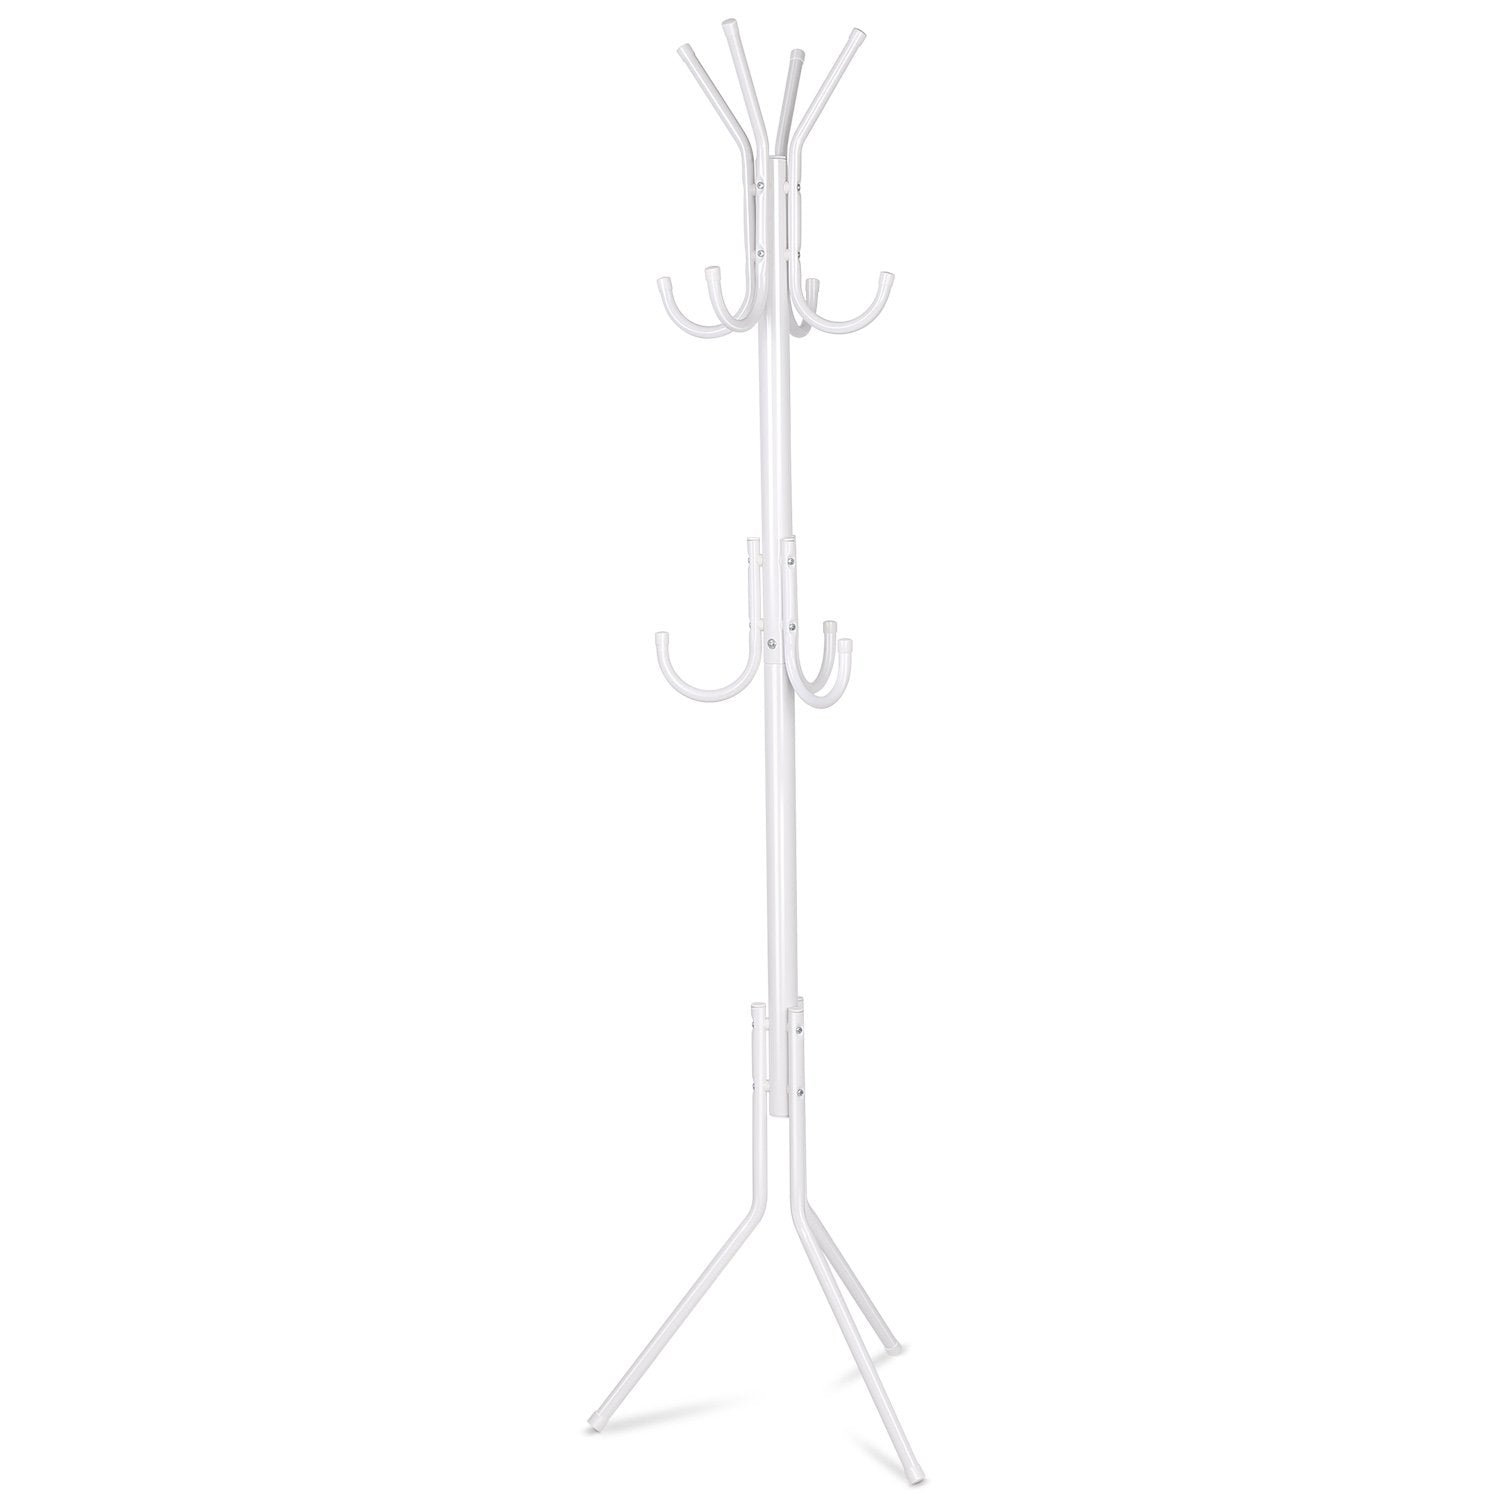 INTEY Standing Coat Rack, Hanger Holder Hooks for Dress, Jacket, Hat and Umbrella, Tree Stand with Base Metal, White